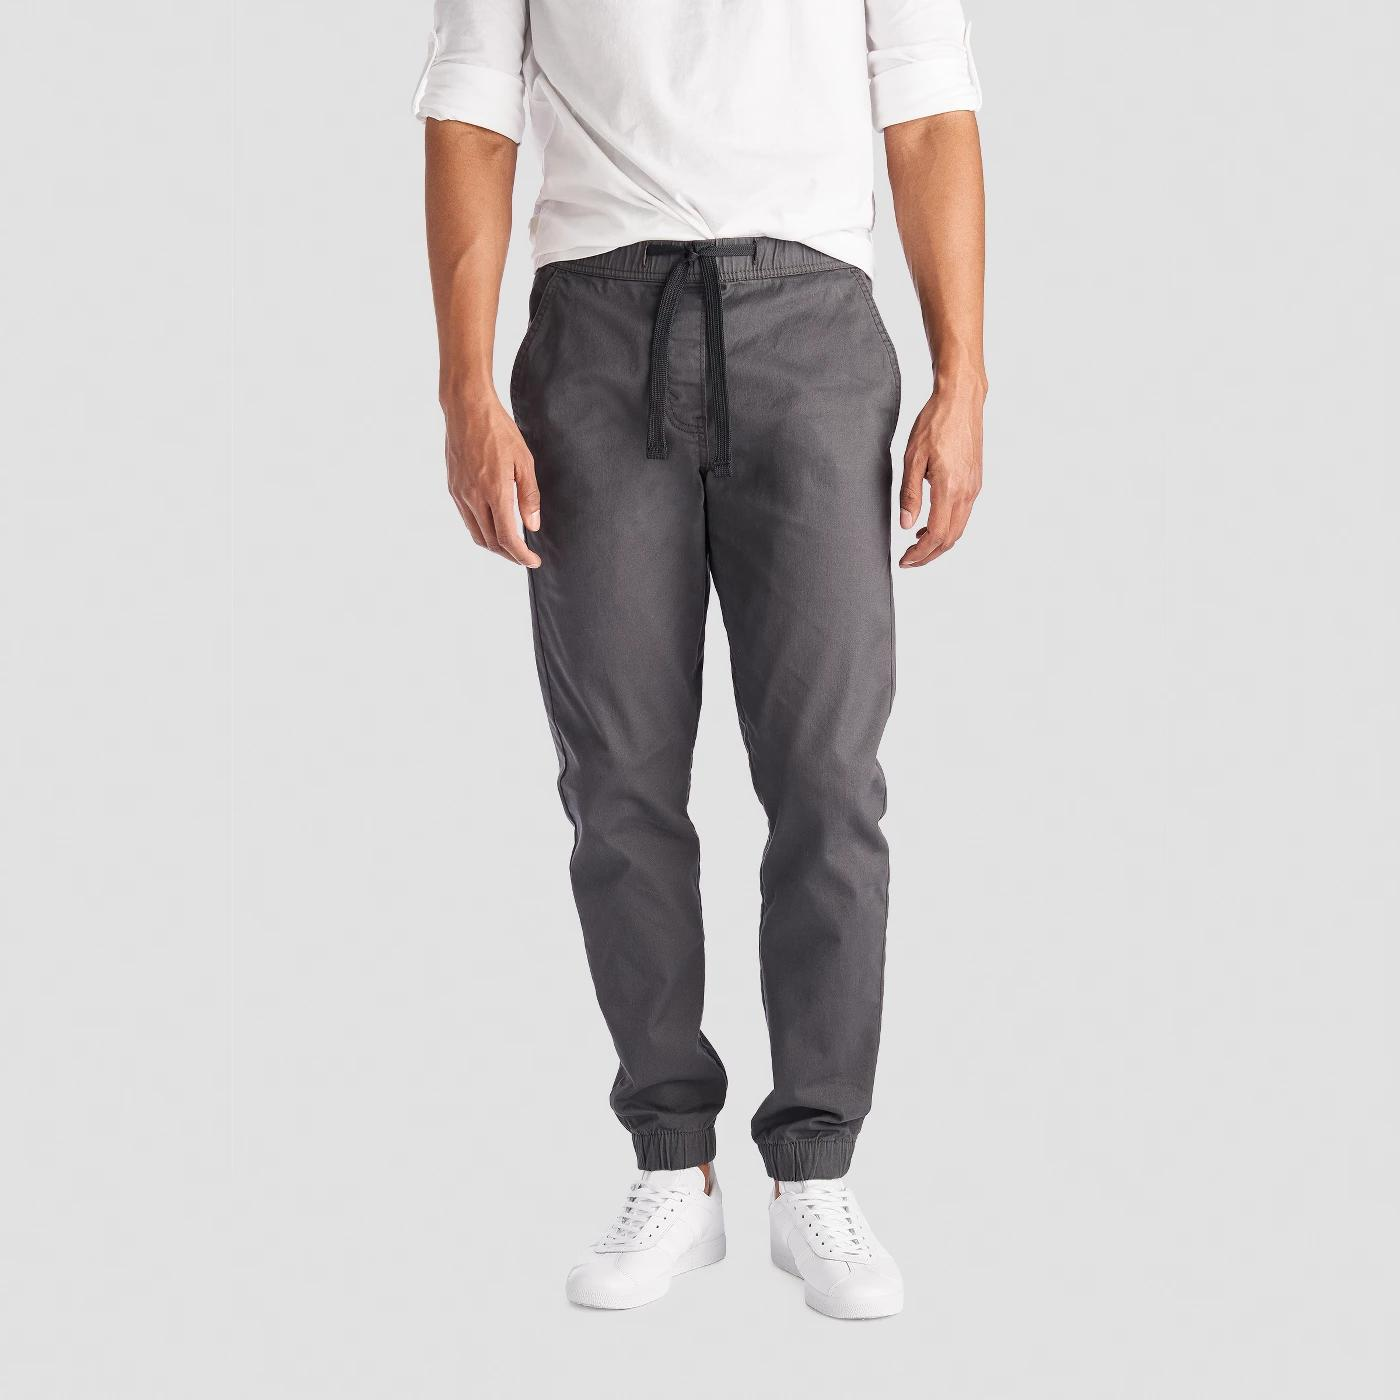 levis denizen men s jogger pants dark